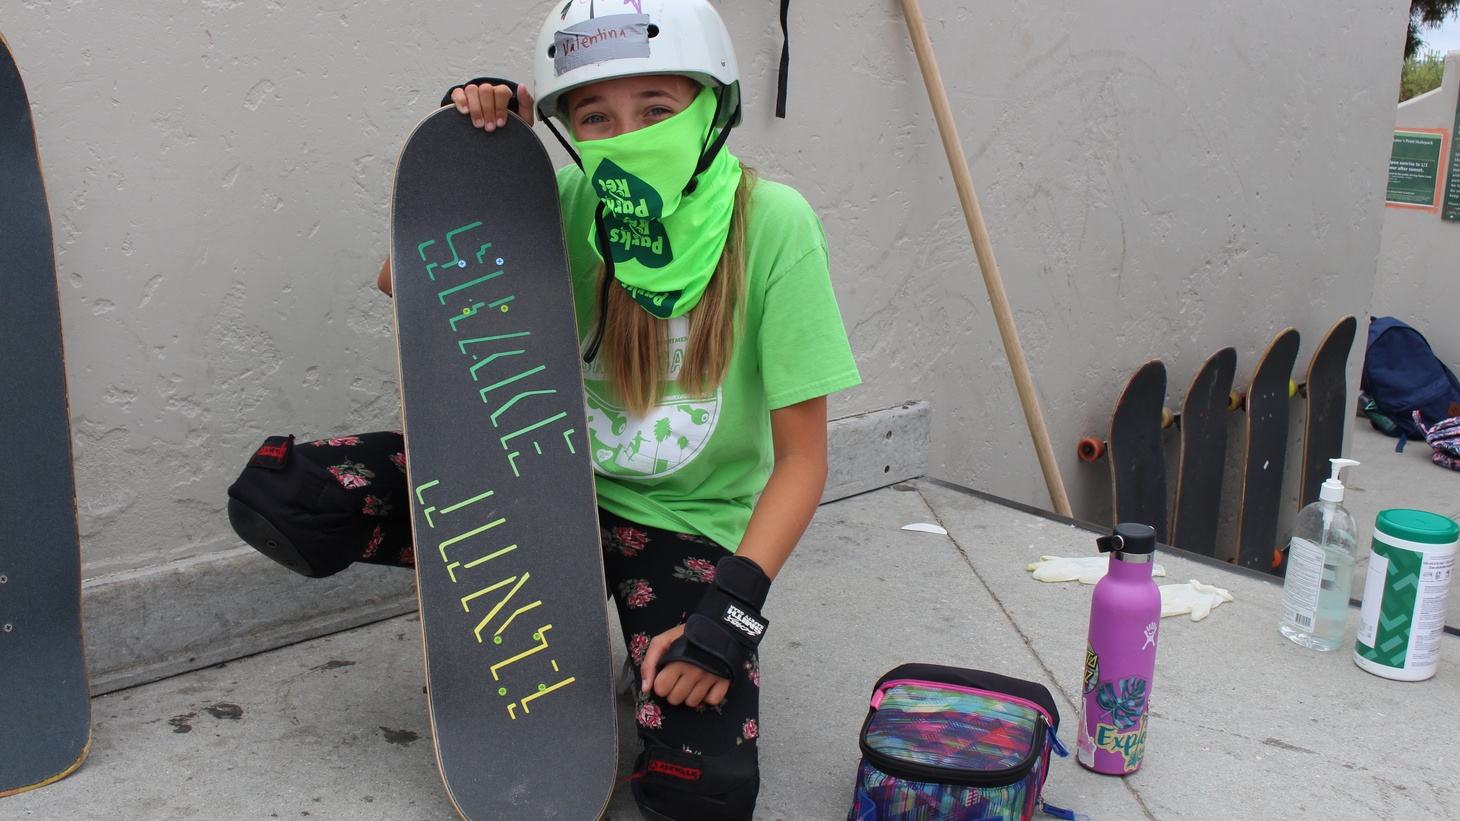 """""""For me, it doesn't feel like summer ... without summer camps,"""" says 11-year-old Valentina Thomas at Skate Camp in Santa Barbara."""